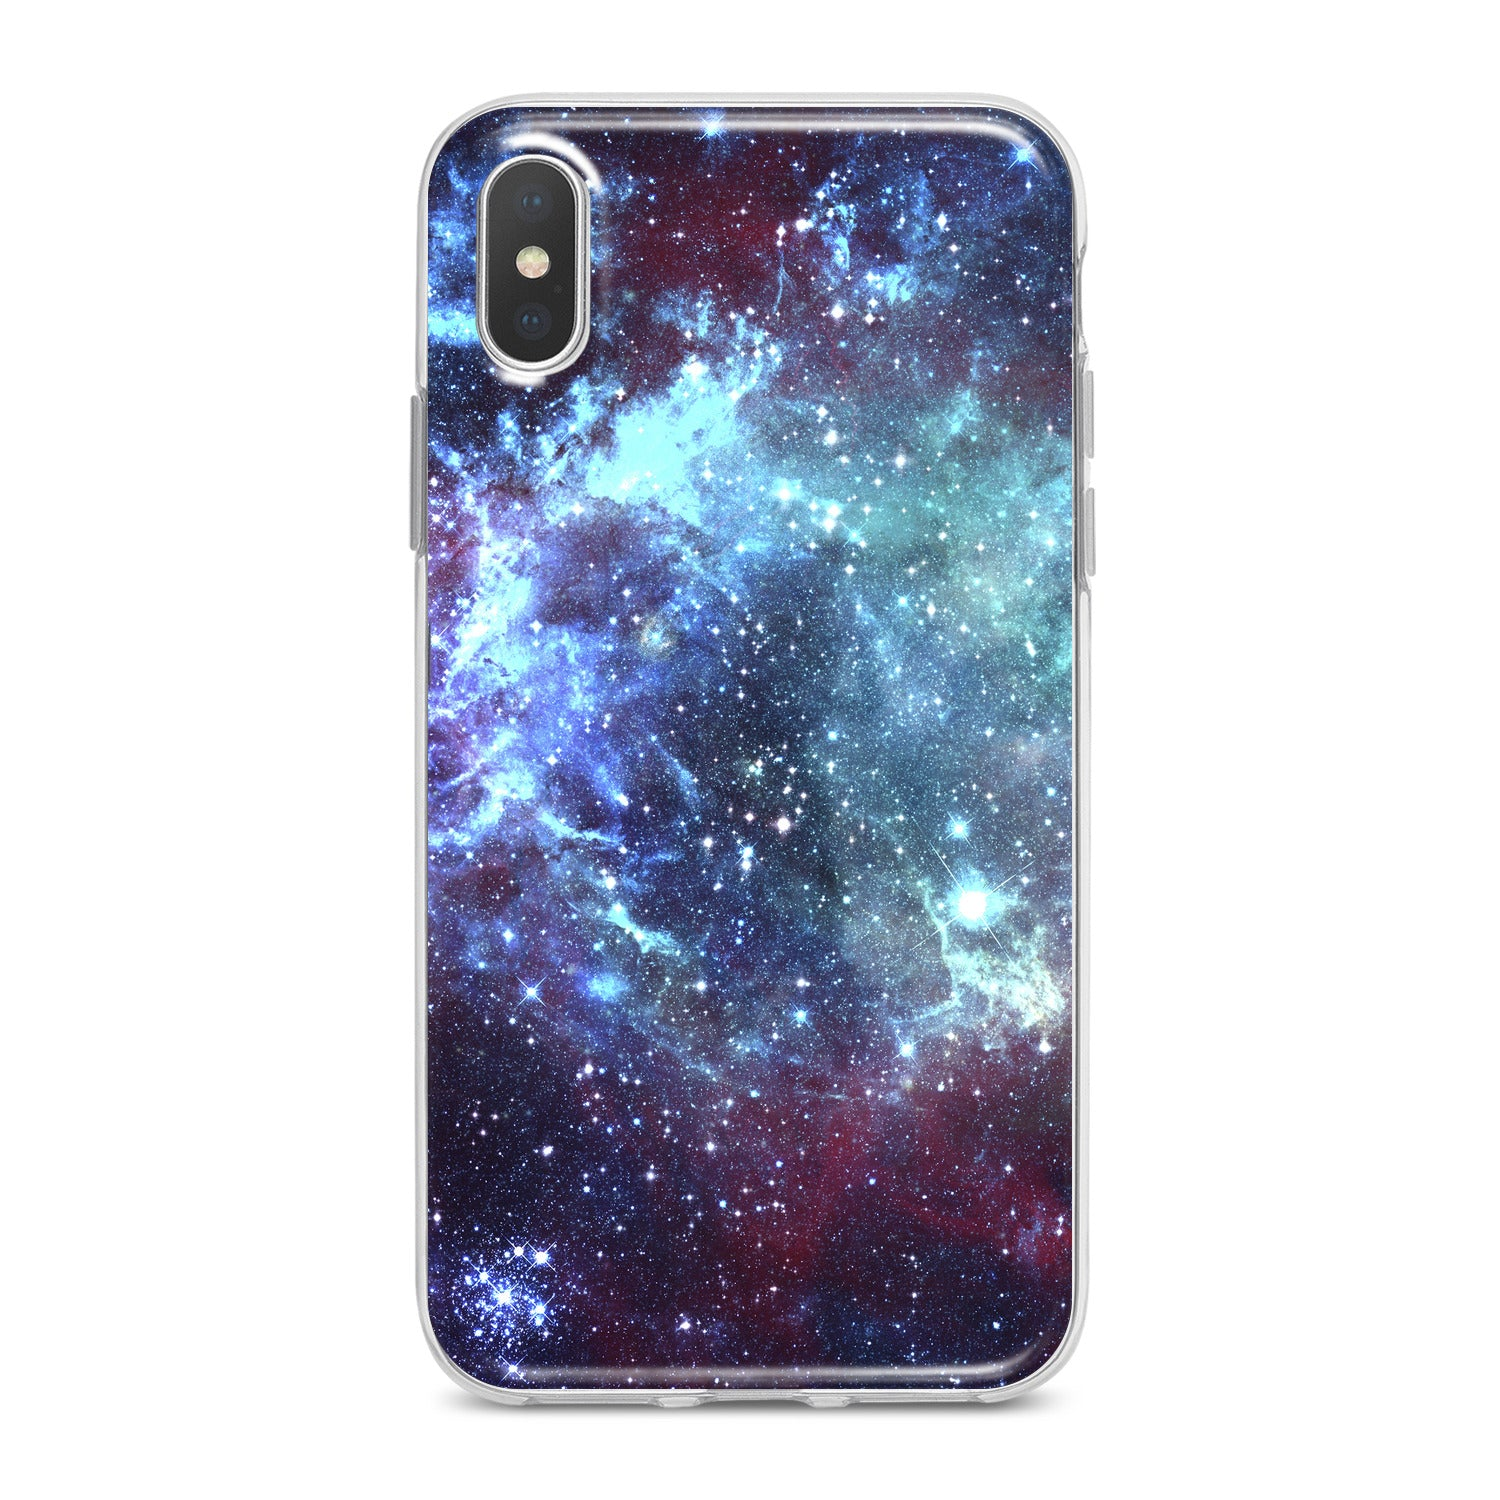 Lex Altern Galaxy Abstract Theme Phone Case for your iPhone & Android phone.